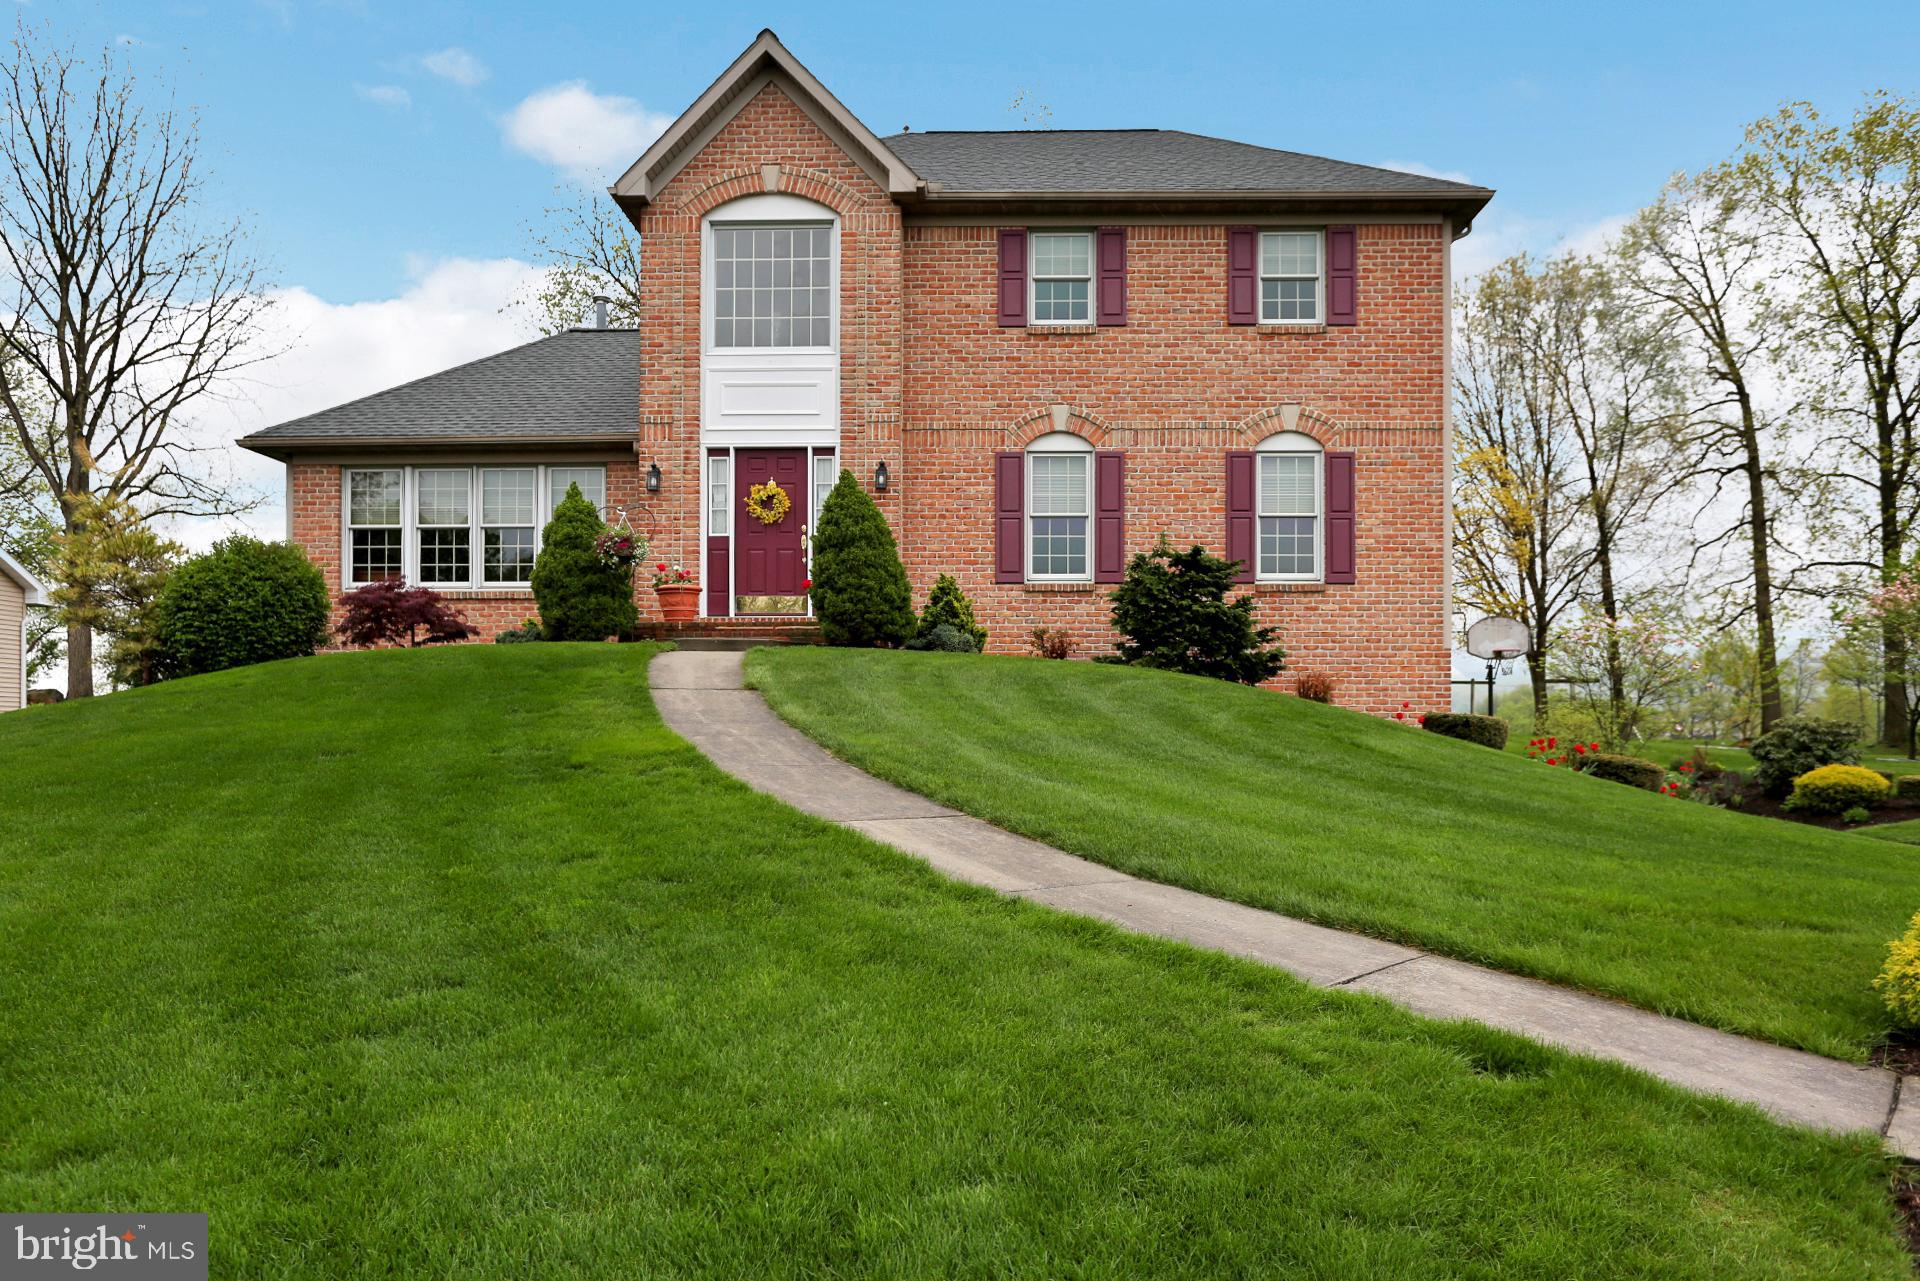 276 W WALNUT TREE DRIVE, BLANDON, PA 19510